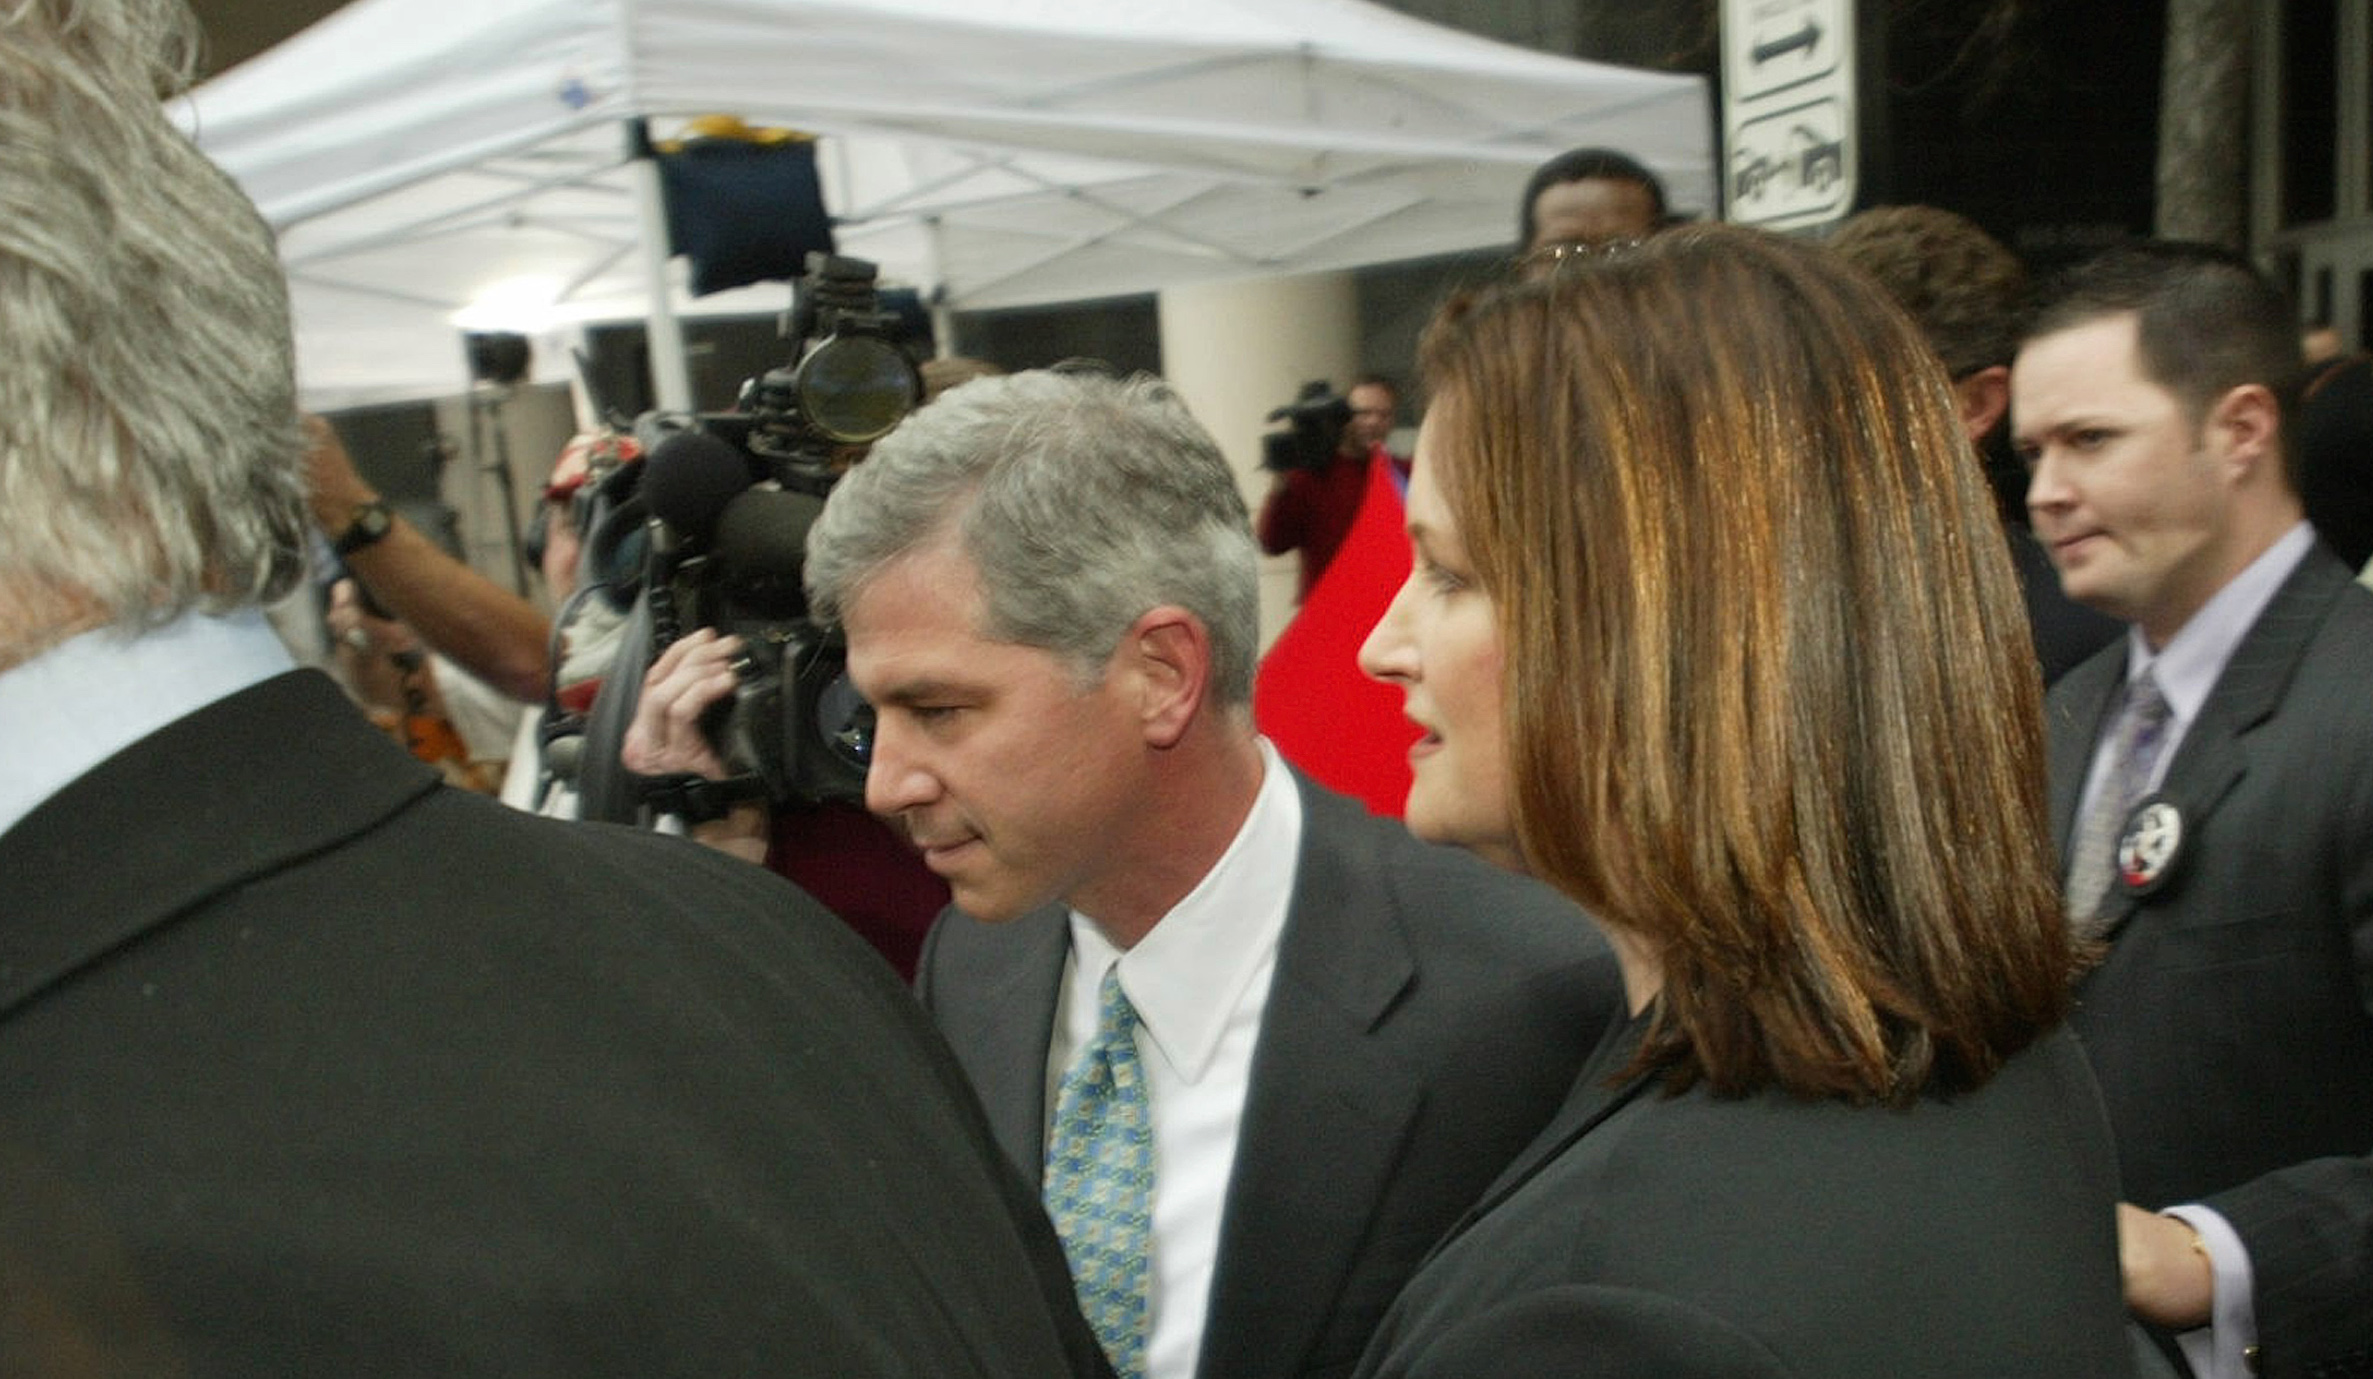 Former Enron CFO Andrew Fastow (L) and wife Lea Fastow (R) leave the Federal Courthouse in Houston after the pair accepted plea bargains, January 14, 2004. Andrew Fastow pleaded guilty Wednesday to wire and securities fraud charges in the scandal that bankrupted the energy trading giant and agreed to cooperate with prosecutors in exchange for a 10-year prison sentence. Fastow, 42, also was to forfeit $29 million in assets, most of which were previously frozen by federal authorities who said he got them illegally. Lea Fastow pleaded guilty to one count of filing a false tax return in a deal that would put her in jail for at least five months. REUTERS/Tim Johnson  TCJ/HK - RTRA90O